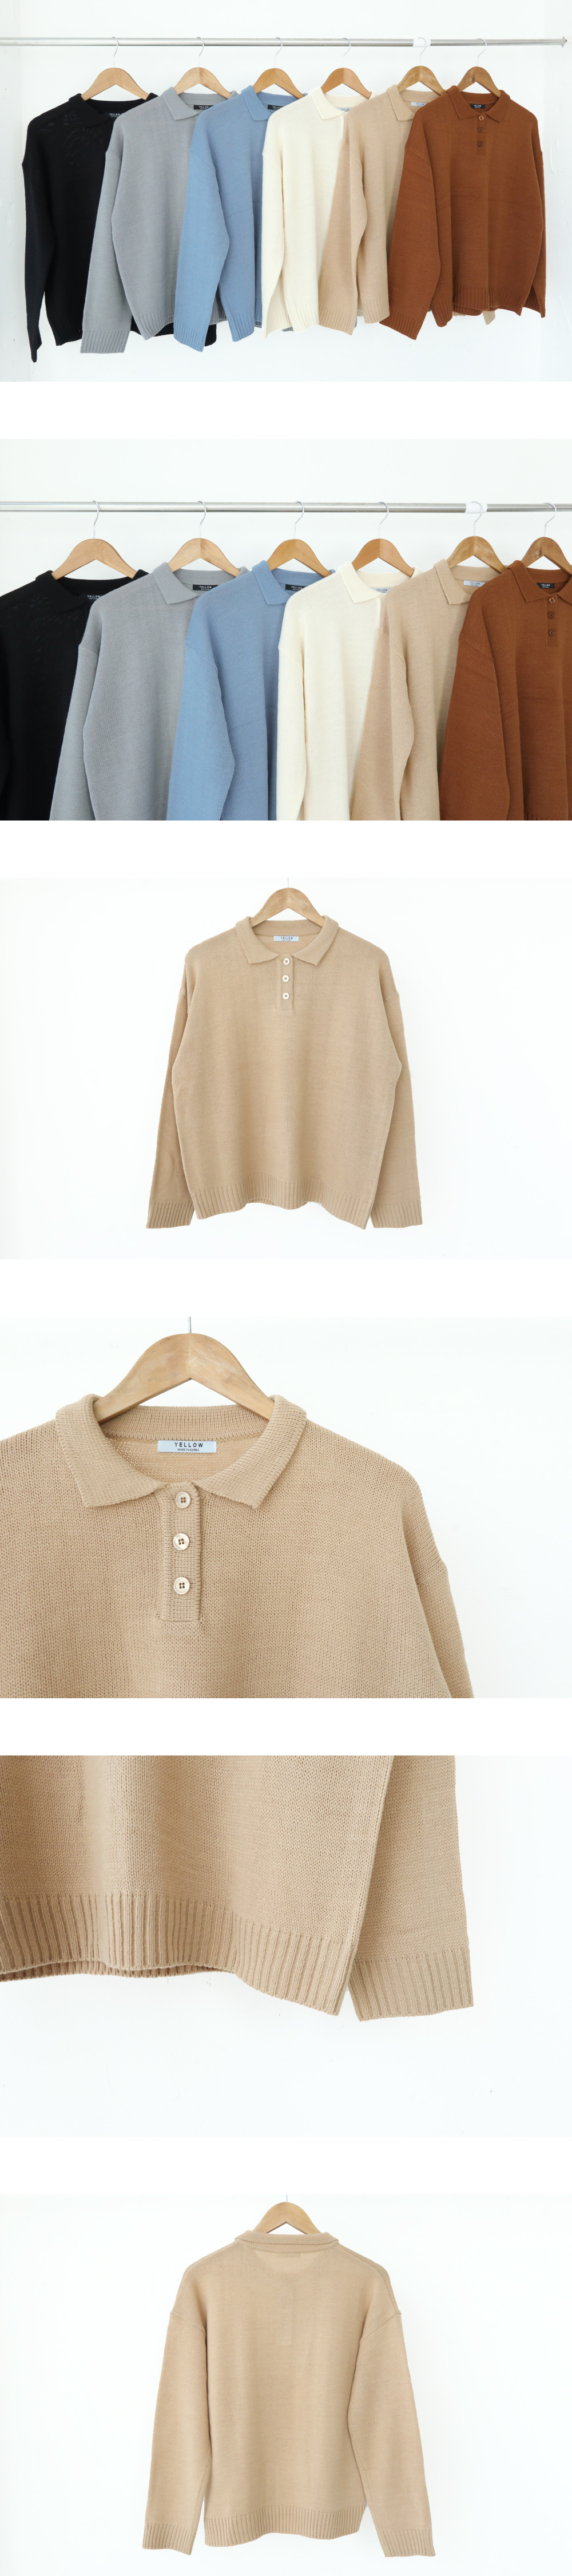 Collar 3-button knit